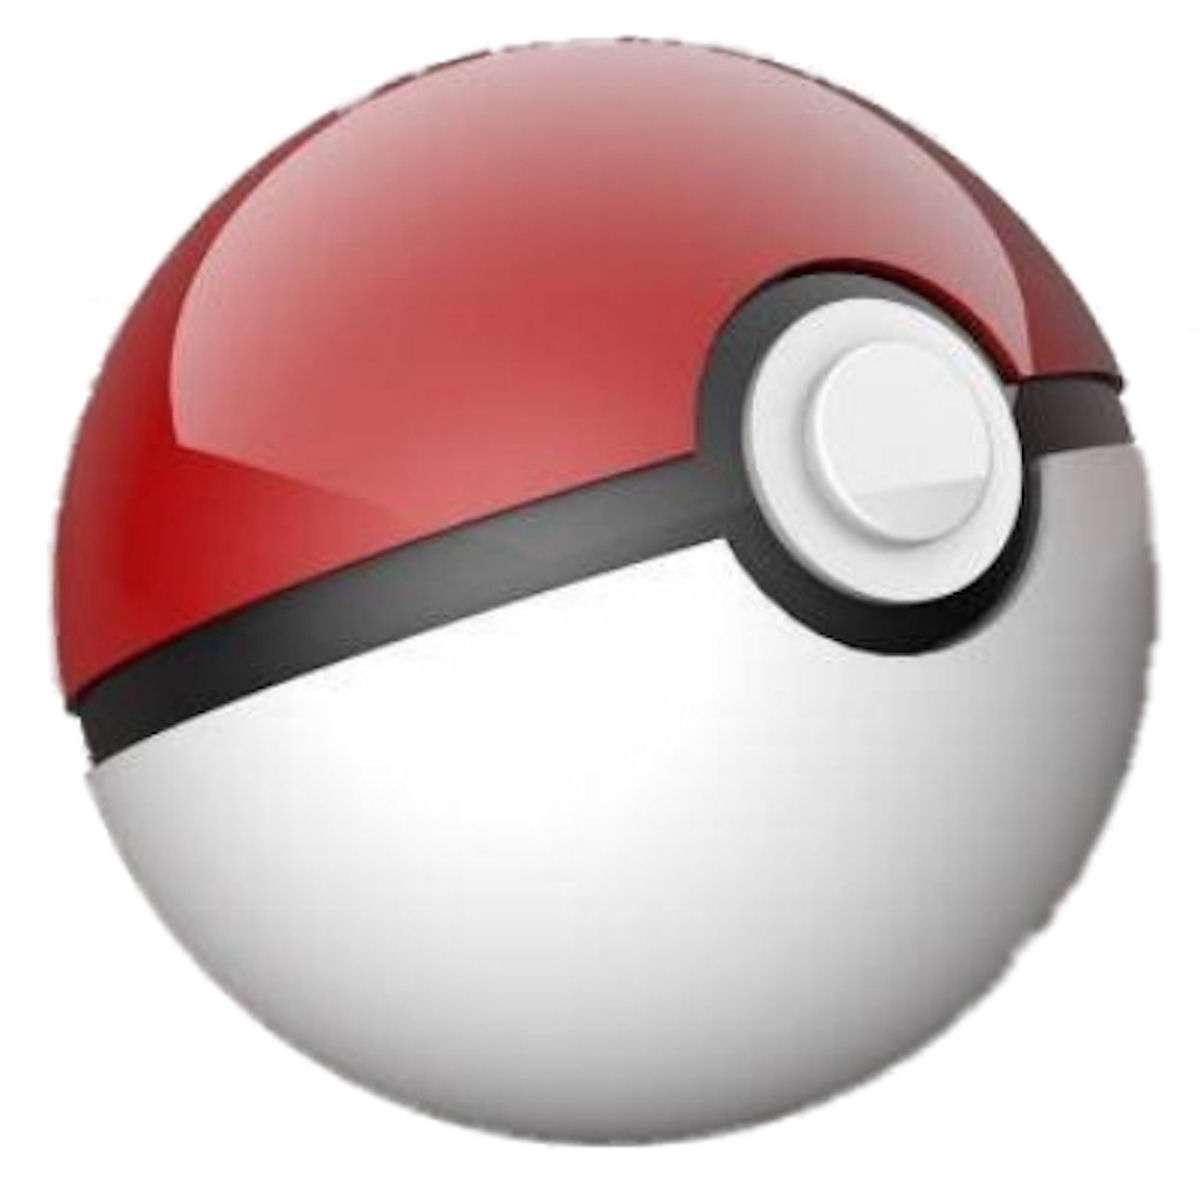 Pokemon Powerball Pokeball USB Charger Power Bank